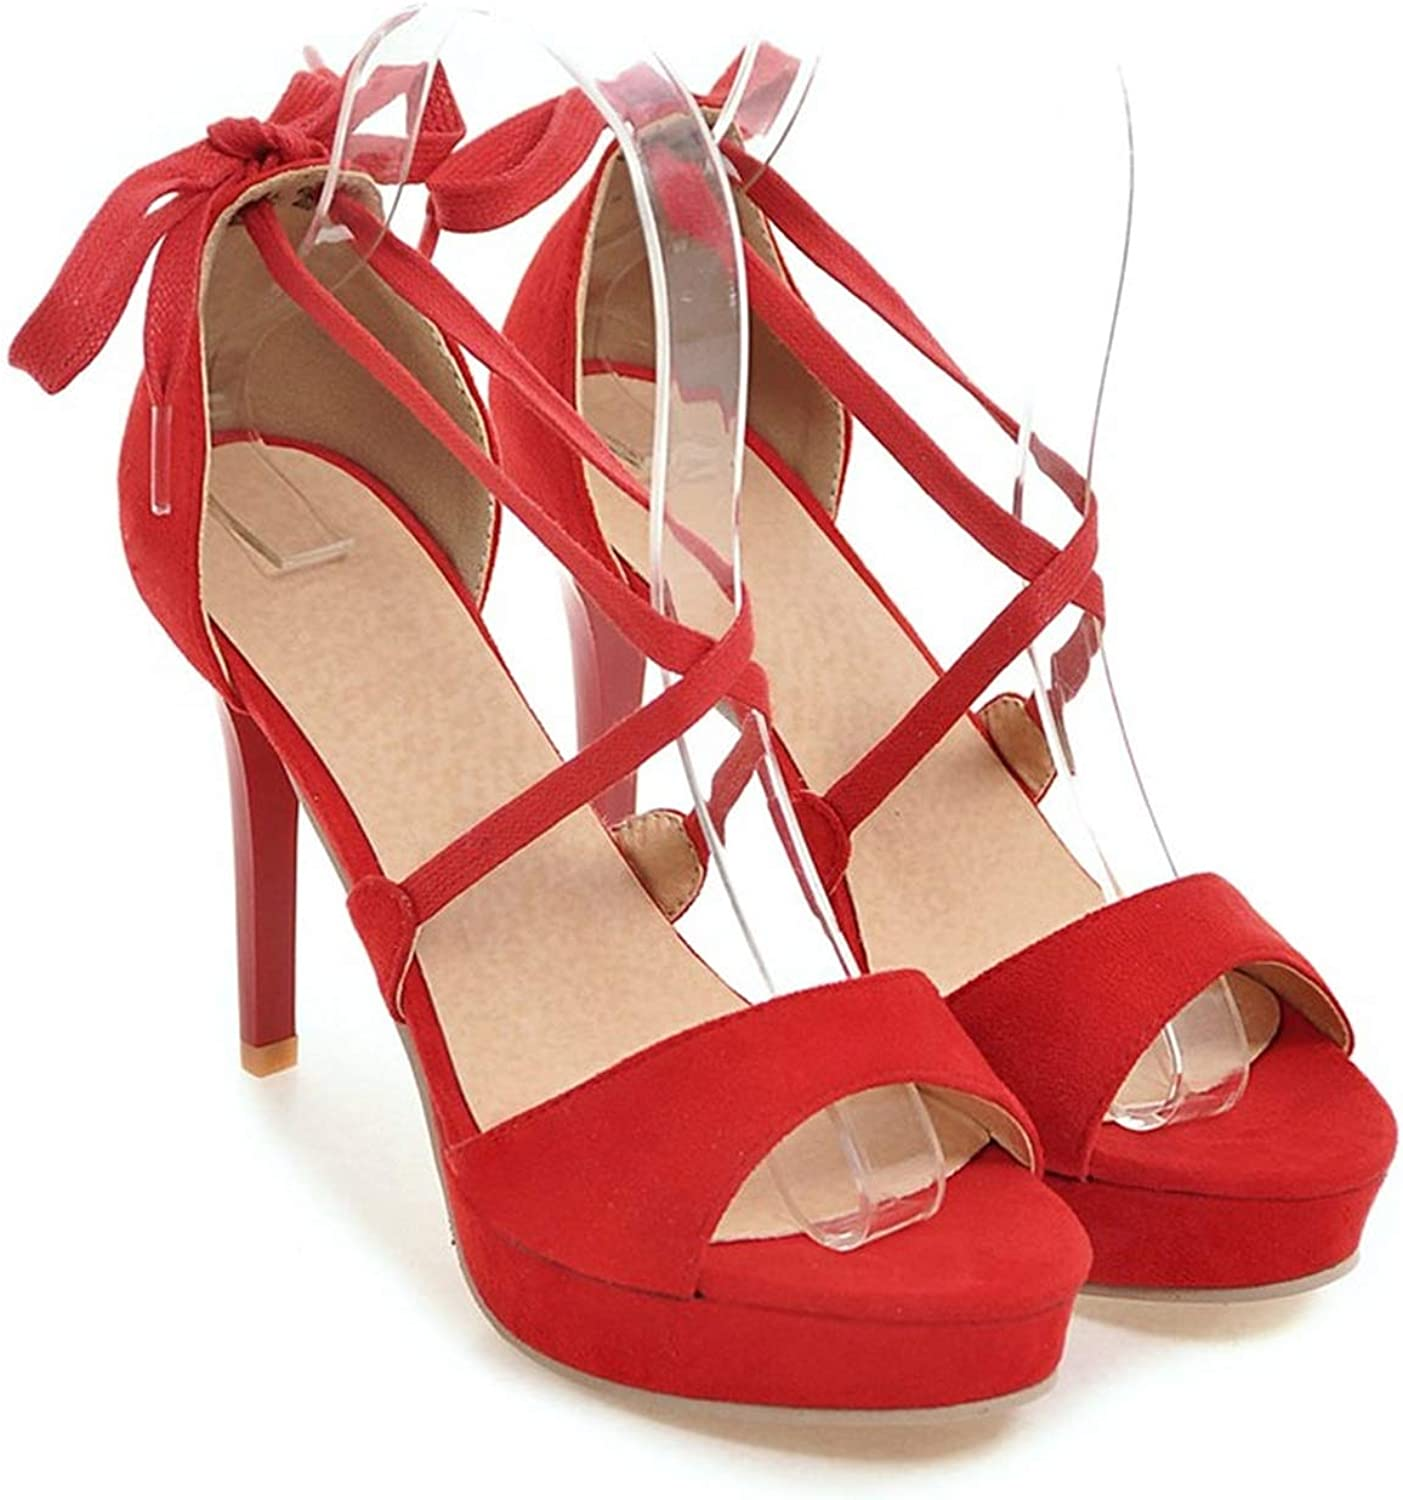 Summer Spring Platform shoes Thin Heels Lace Up Red color Extreme High Heels Elegant Women Sandals